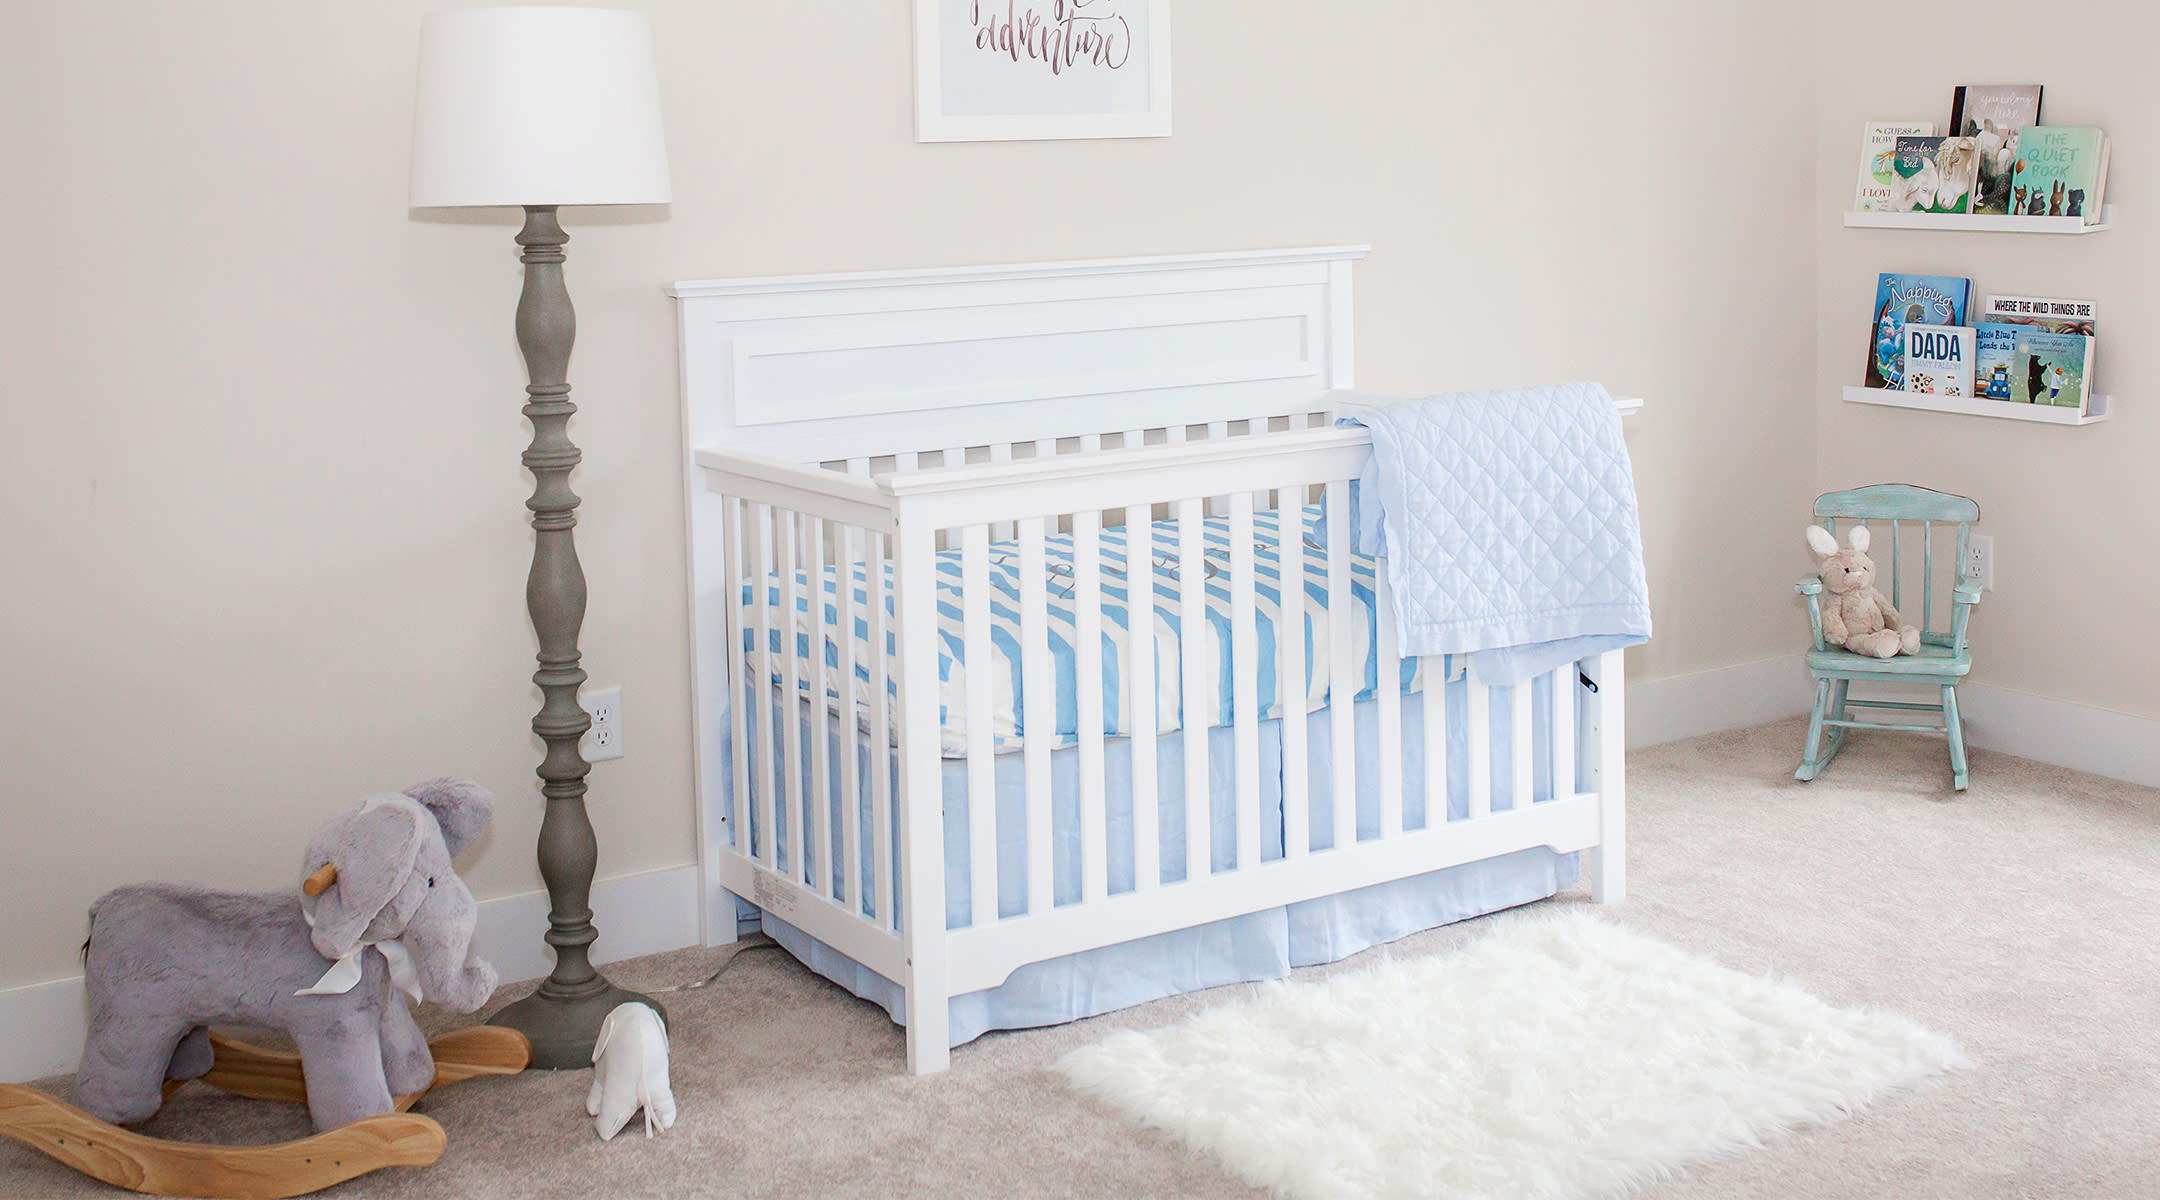 Amelia S Room Toddler Bedroom: When To Move Baby To His Own Room